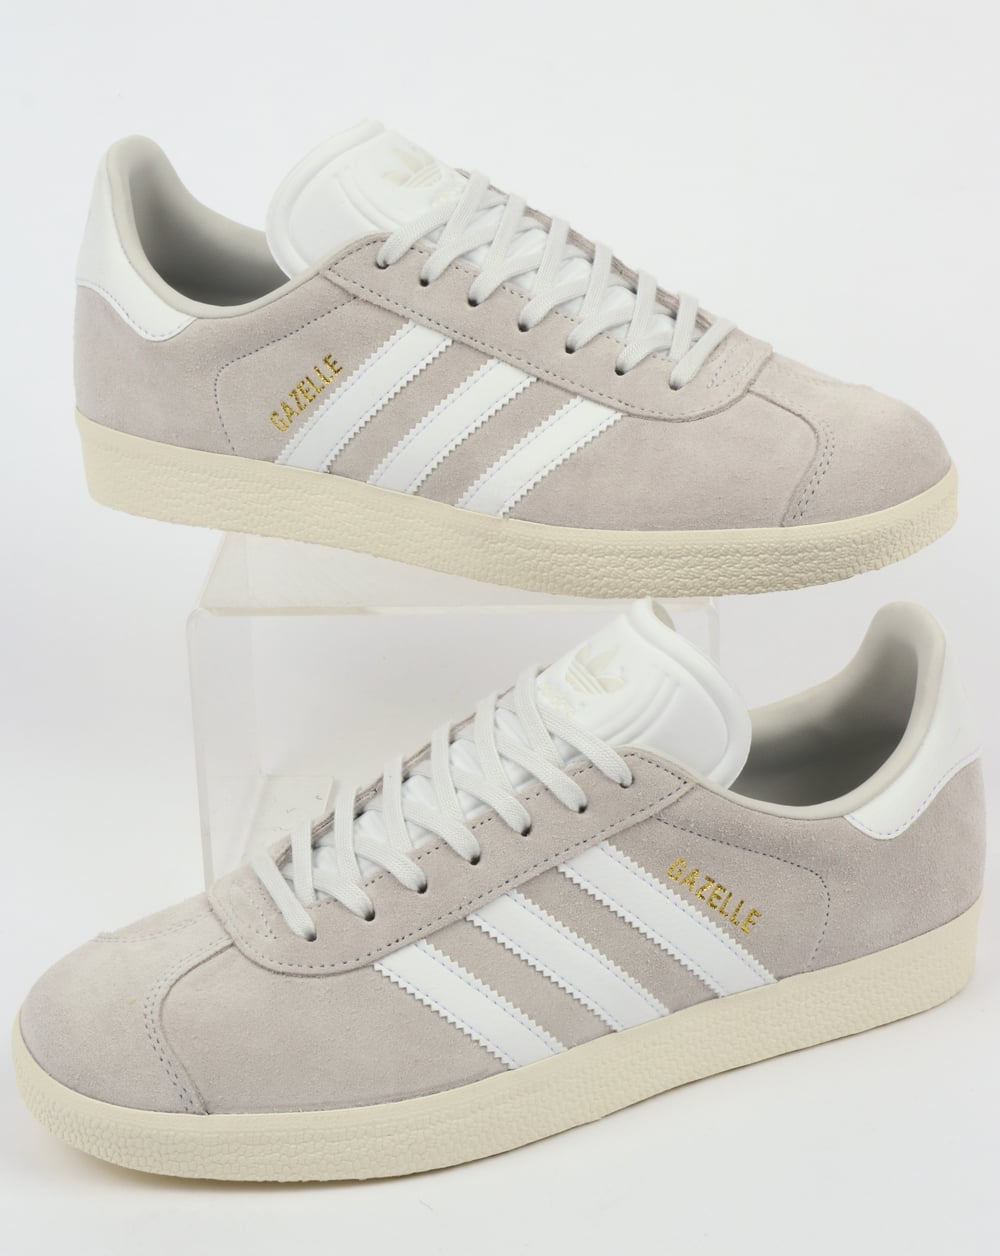 adidas suede white - 64% remise - www